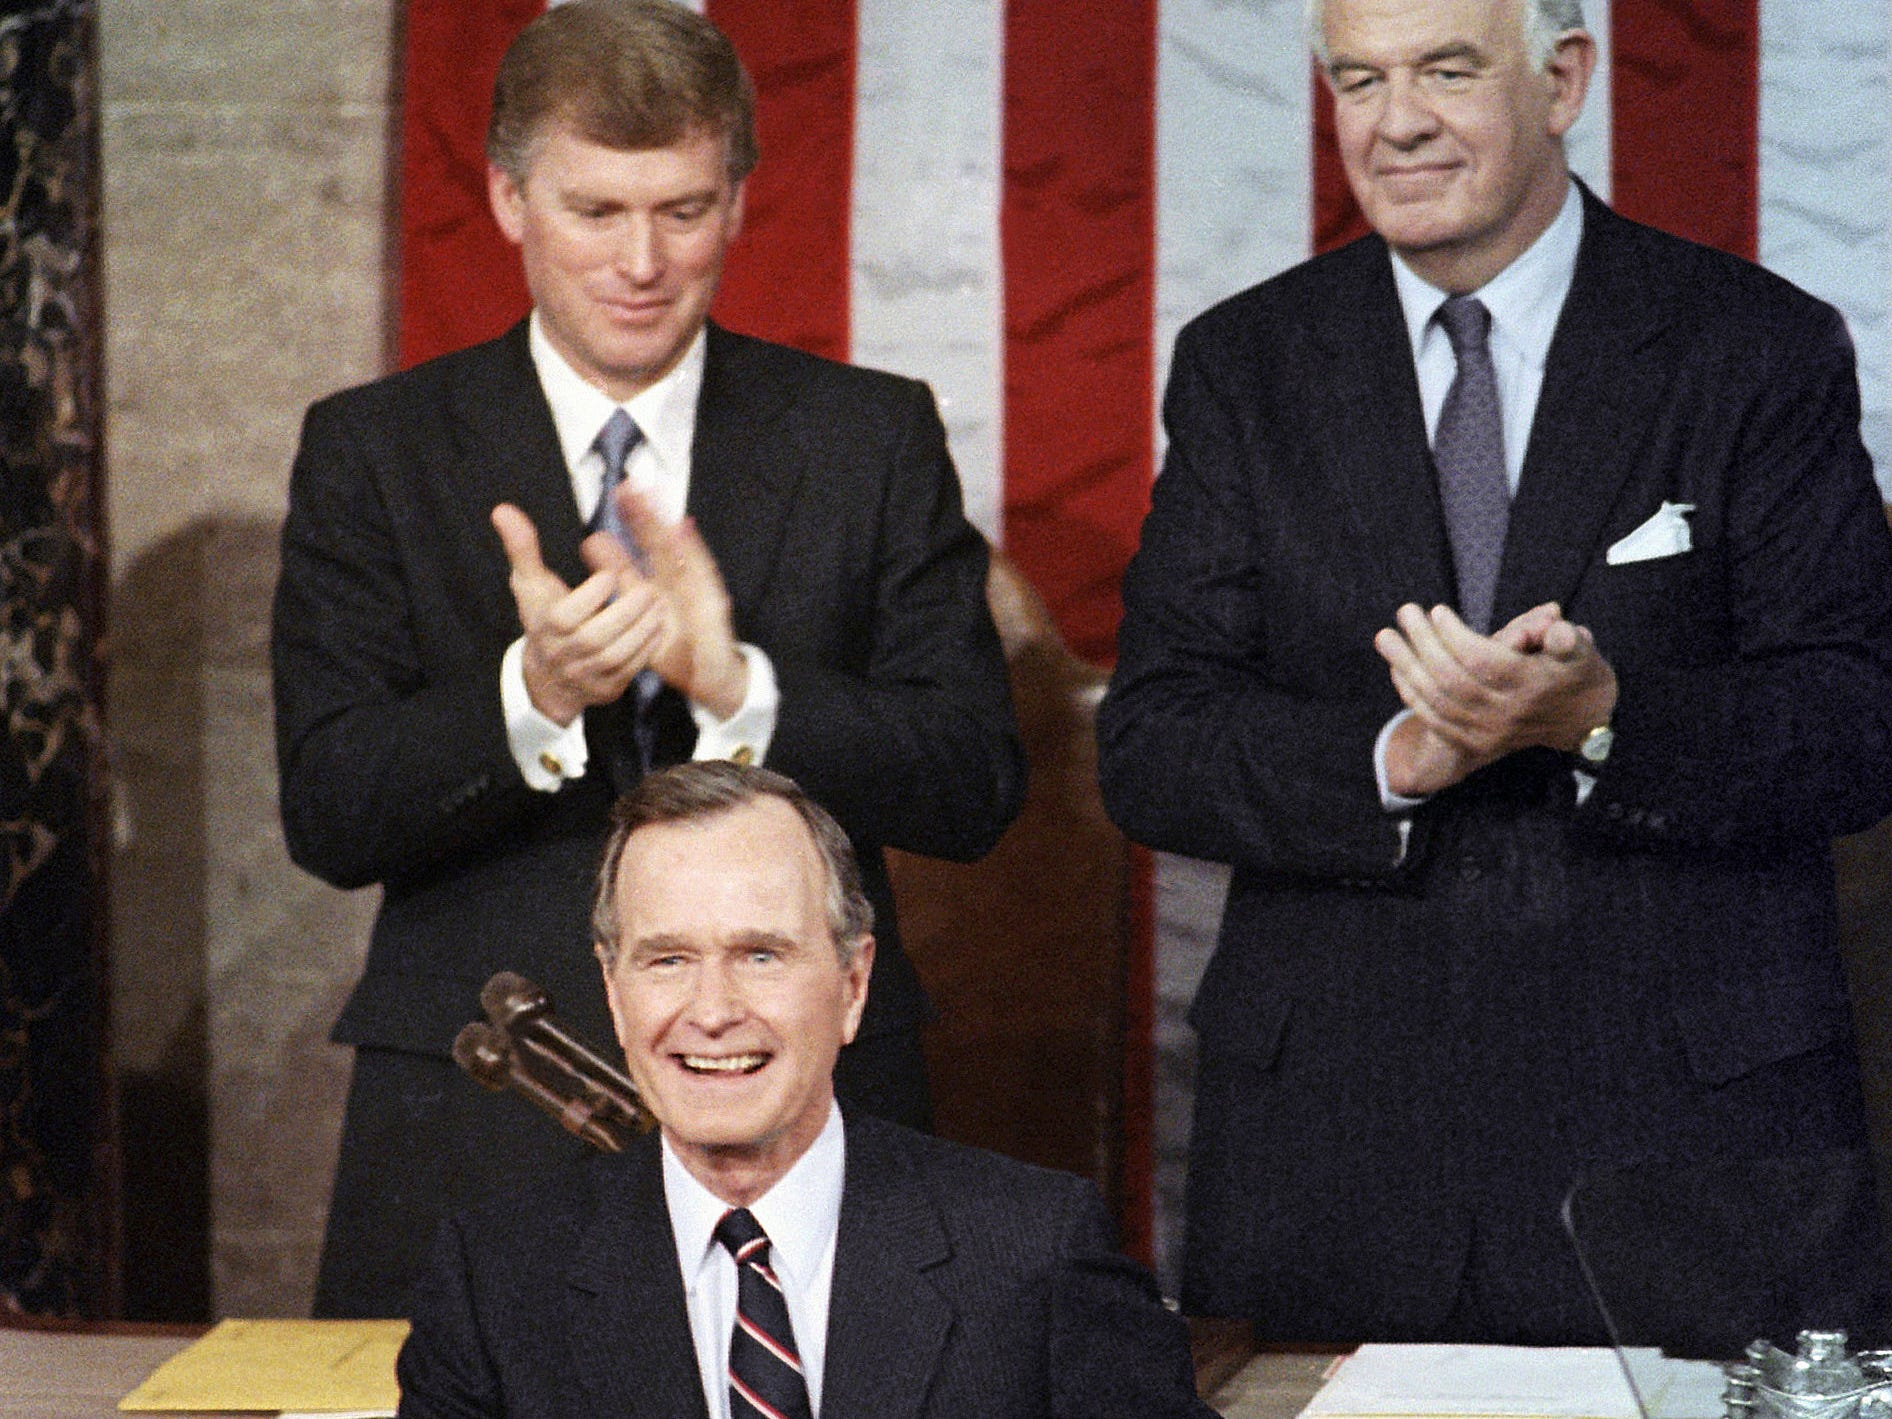 President George H.W. Bush receives applause from Vice President Dan Quayle, left, and House Speaker Thomas Foley prior to delivering his first State of the Union address on Capitol Hill on Jan. 31, 1990.